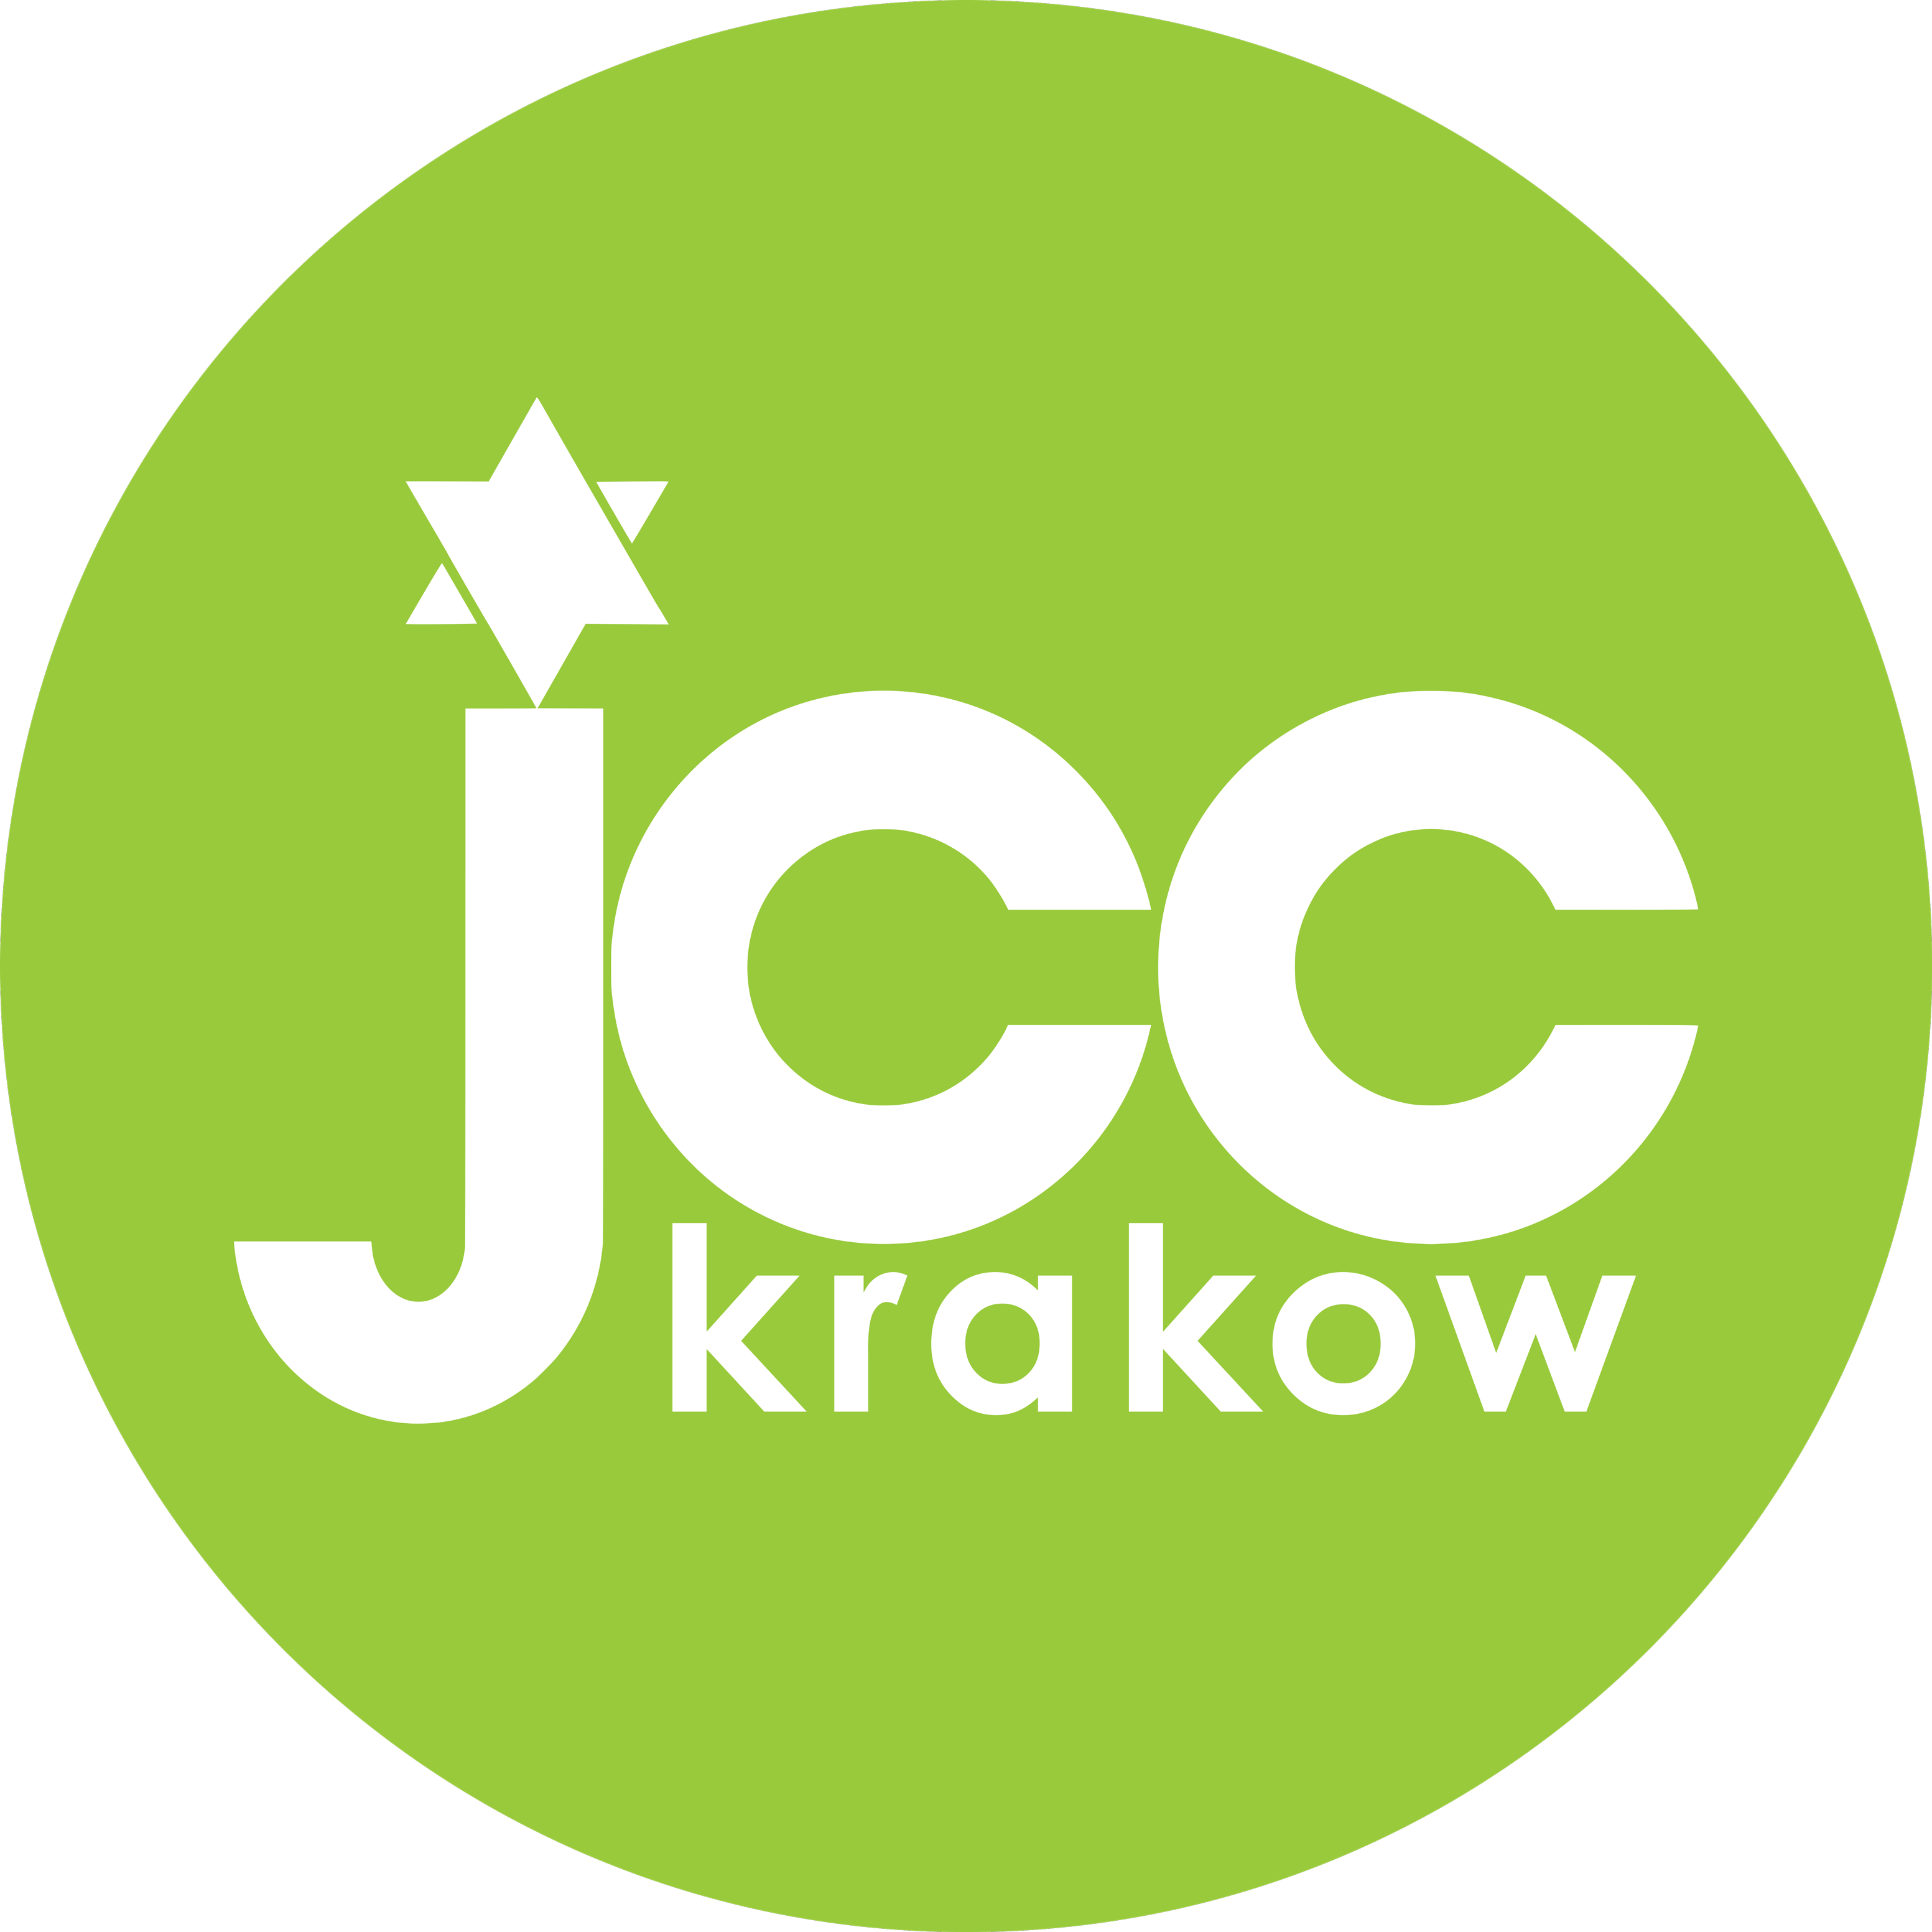 JCC-logo-nowe_transparent